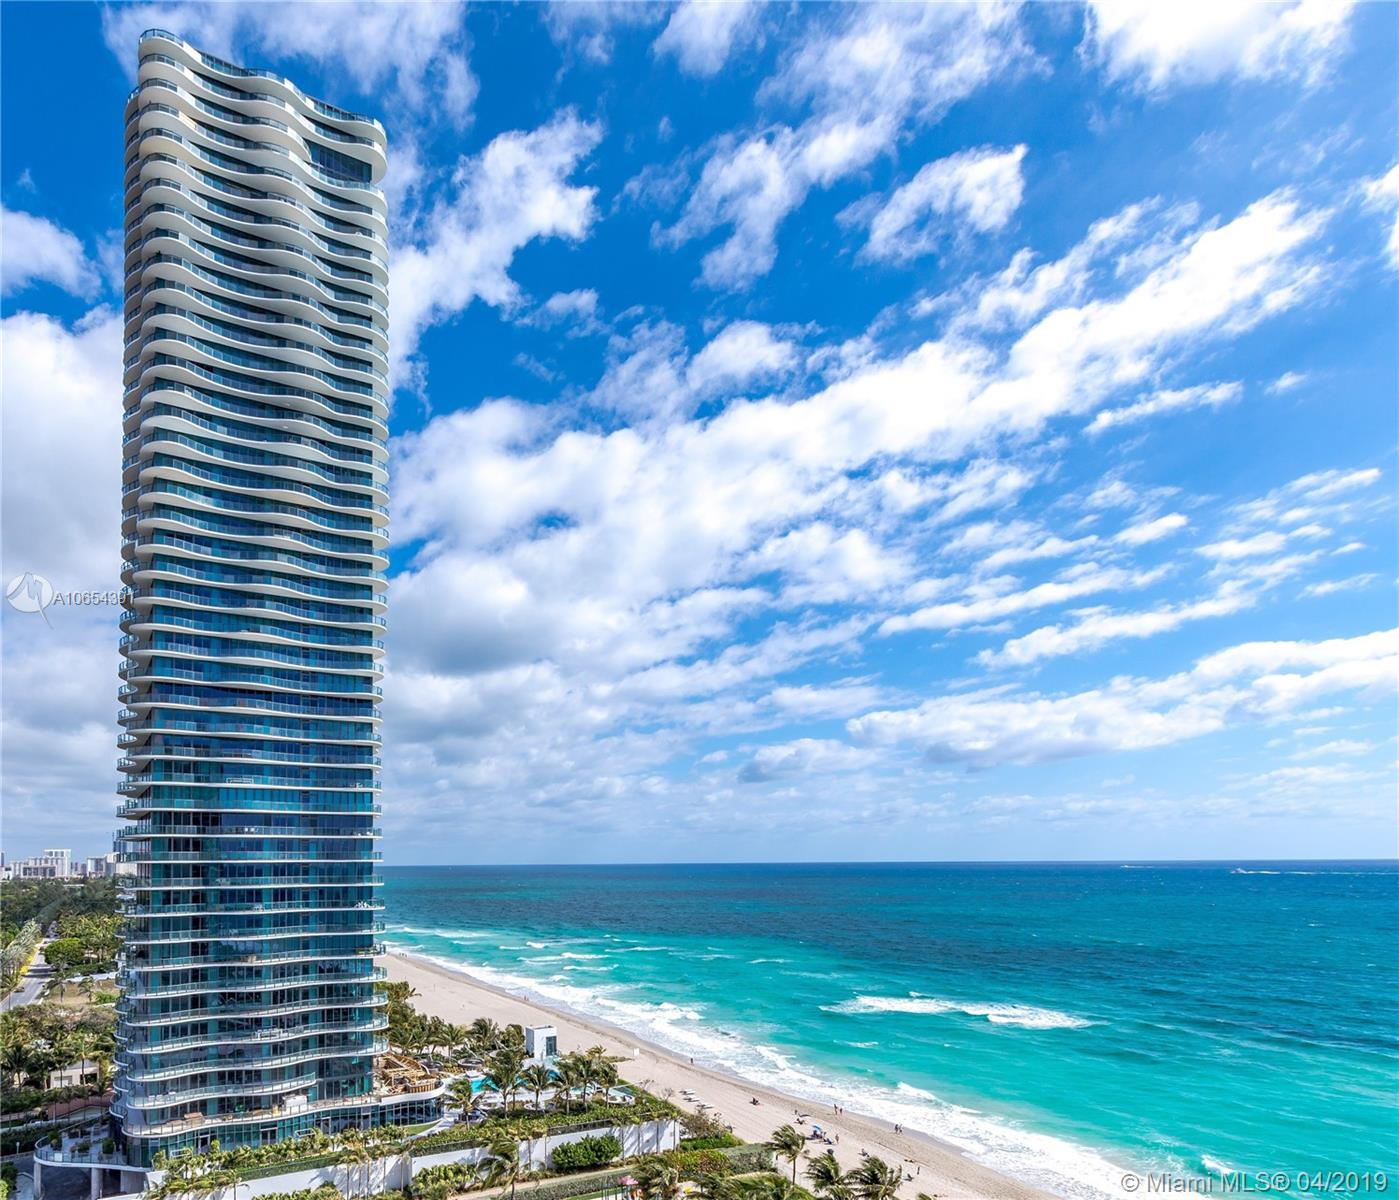 Features 360 degrees unobstructed ocean and city views. Only one residence per floor with over 7,600 sqft with 5,515 sqft A/C & 2,100 sqft of wrap around terrace. Unrivaled lifestyle with amenities & services such as full beach and pool services, private wine vault, business center, gym/spa, concierge & valet, & more. Unit with countless upgrades using only the highest quality finishes & materials that includes: top of the line Creston automation, Italian marble, custom design ORNARE cabinets, custom built wine cellar for 500+ bottles, exotic stone and much more. The unit is a masterpiece, guaranteed to satisfy the most demanding buyers!